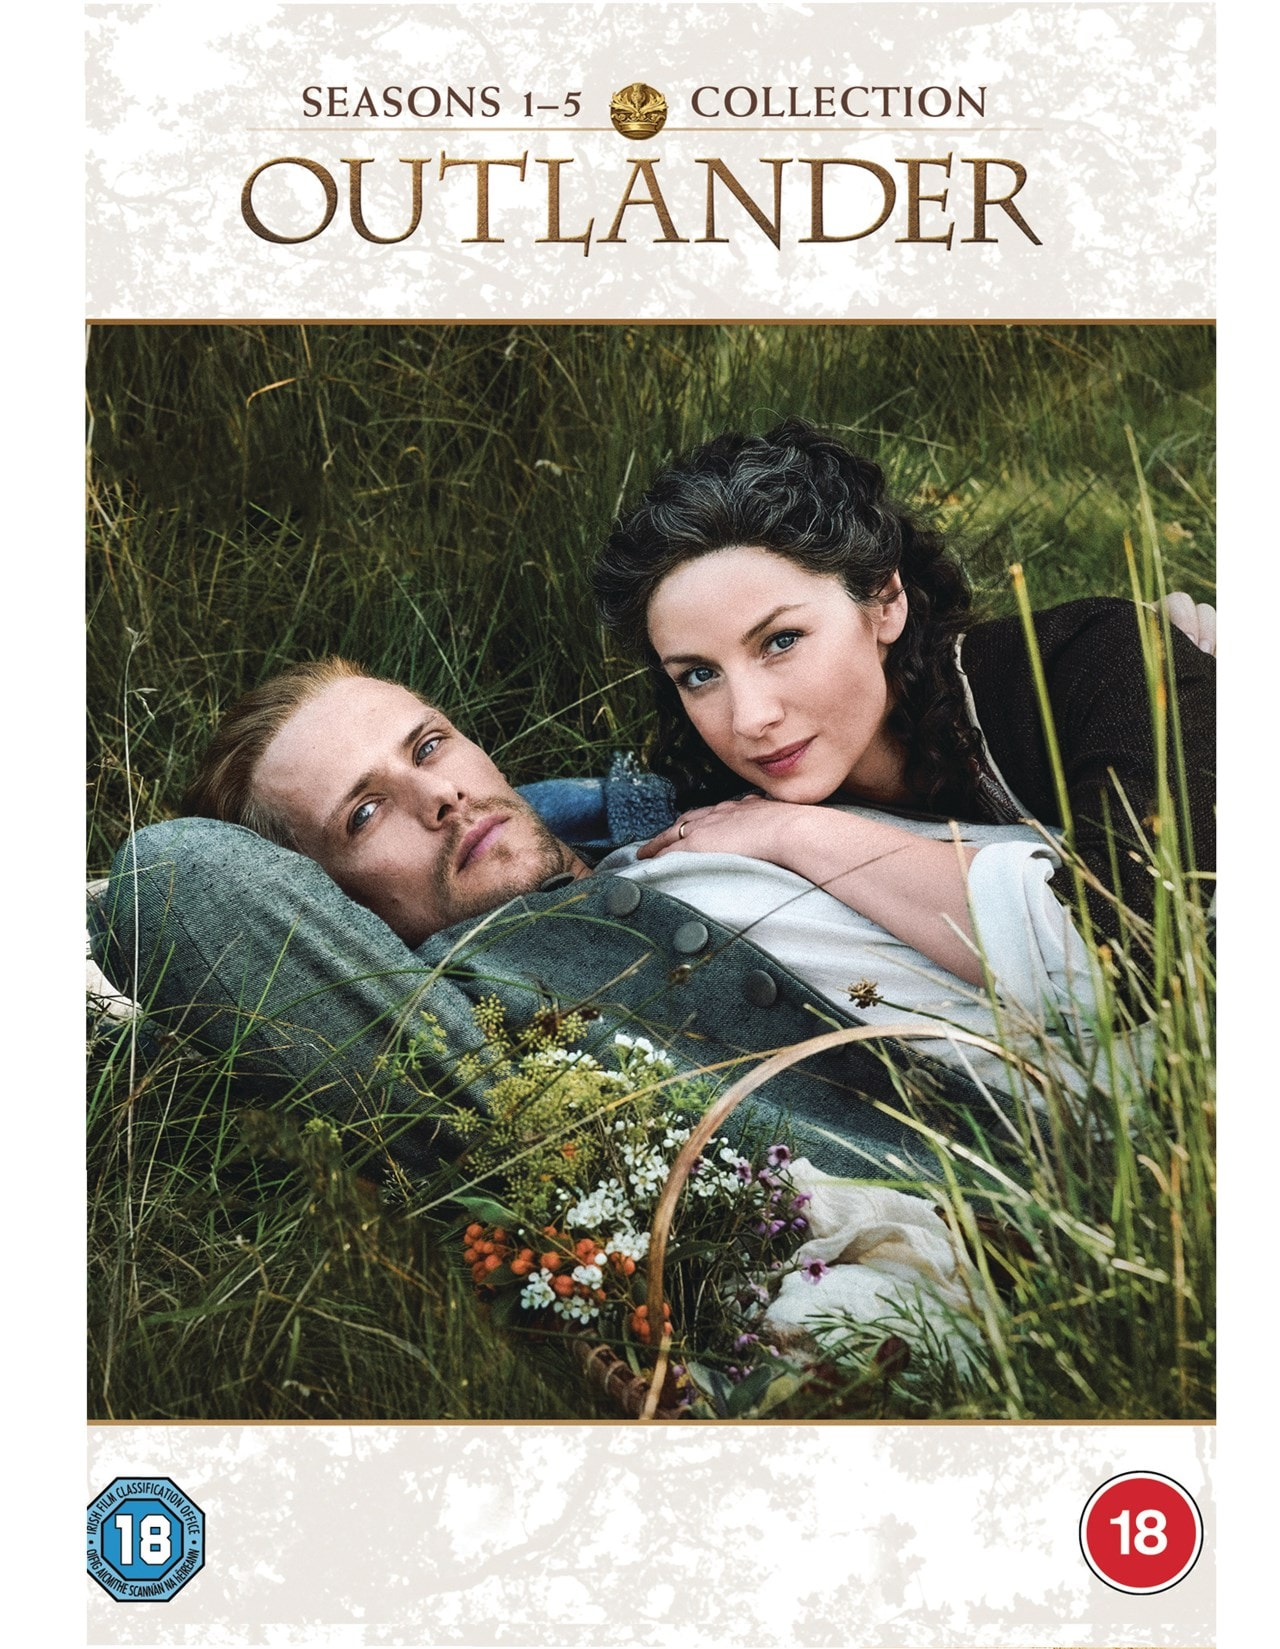 Outlander Seasons 1 5 Dvd Box Set Free Shipping Over 20 Hmv Store